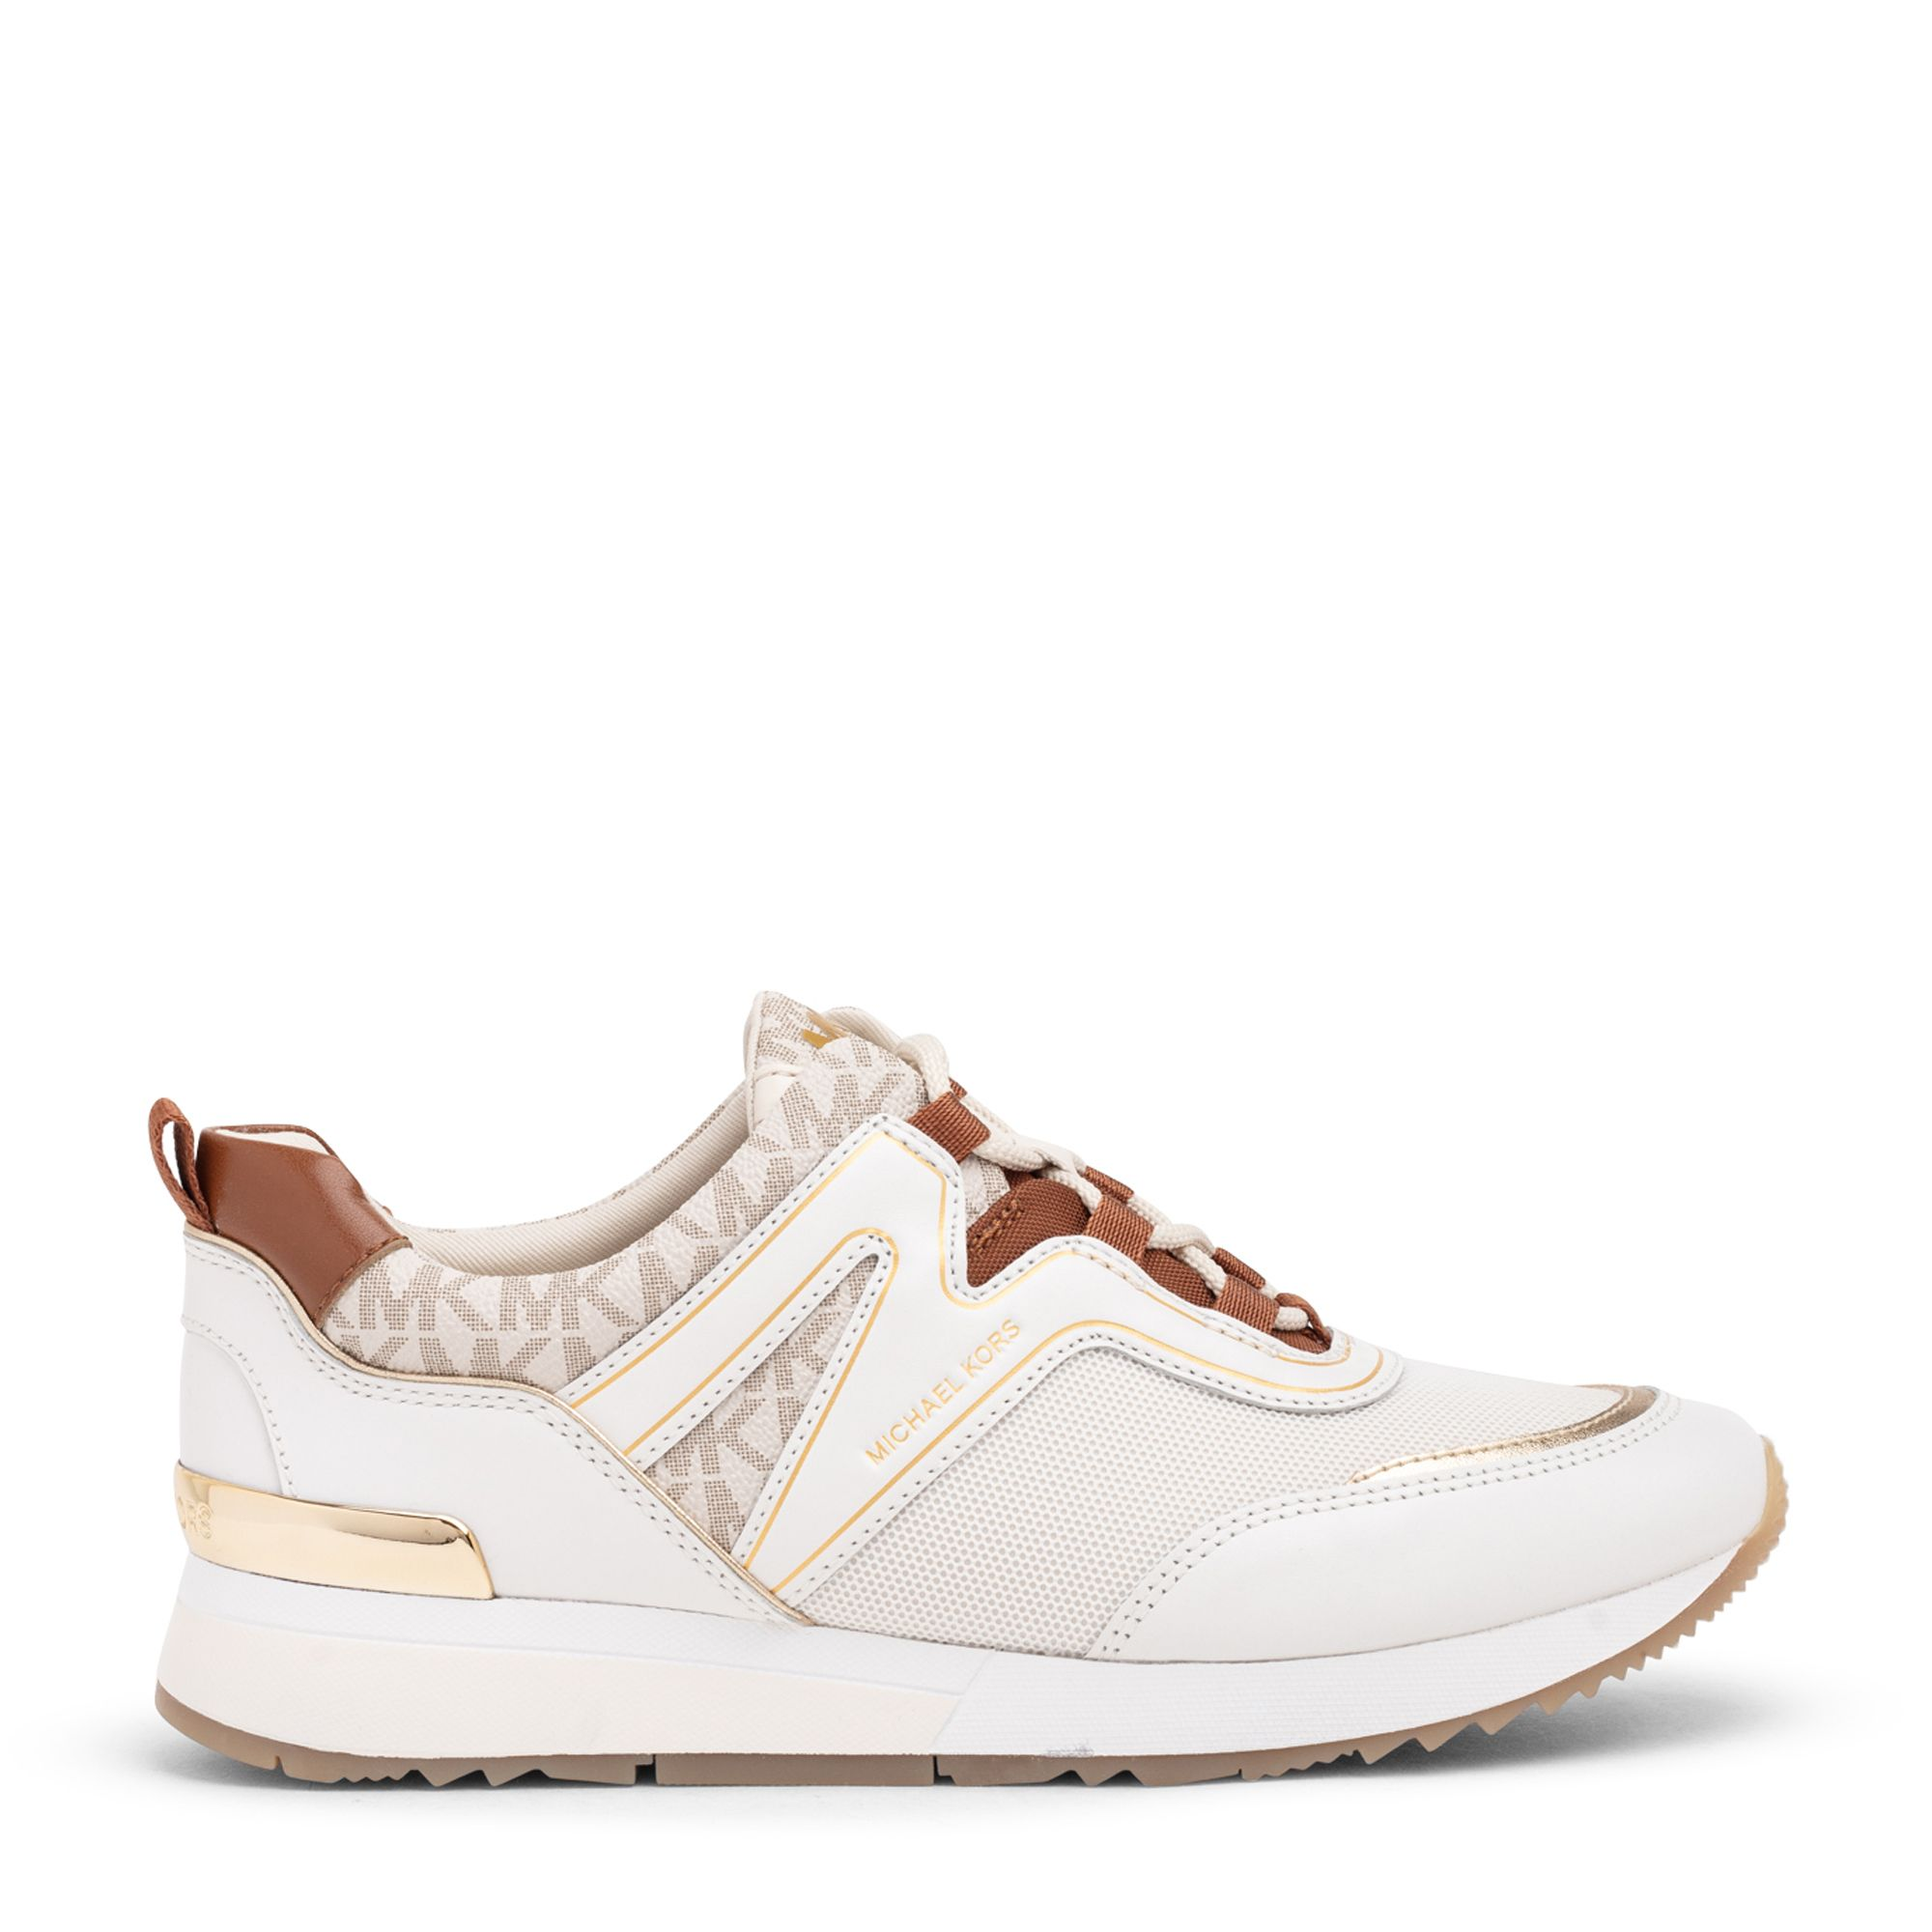 Pippin sneakers